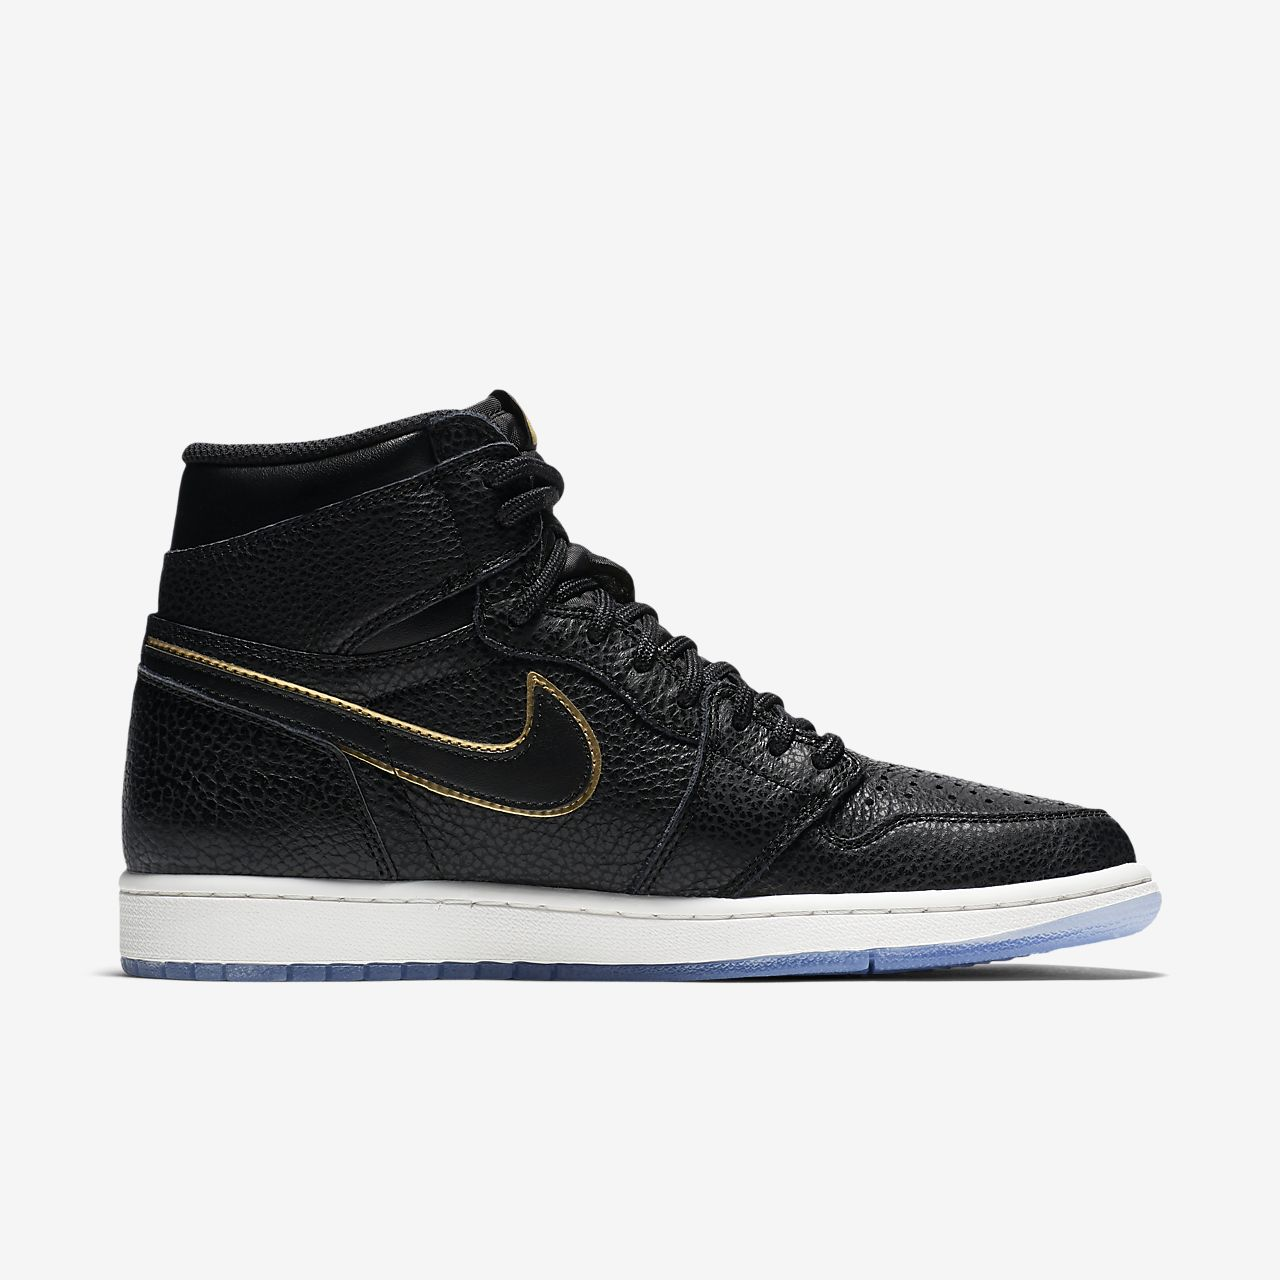 234bce85afaa Air Jordan 1 Retro High OG Shoe. Nike.com SG